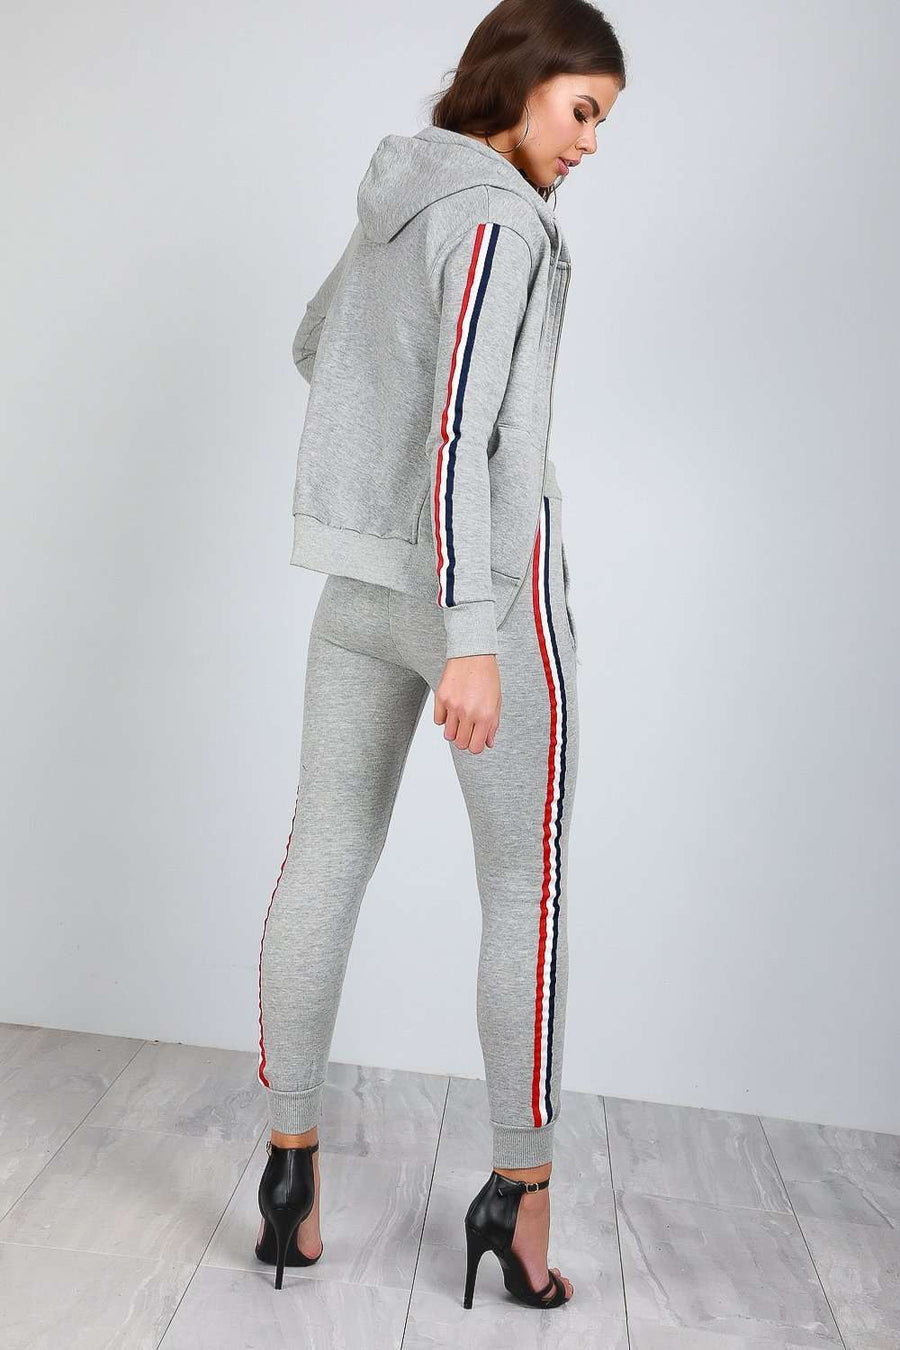 Kerry Side Stripe Fleece Line Lounge Wear Set - bejealous-com